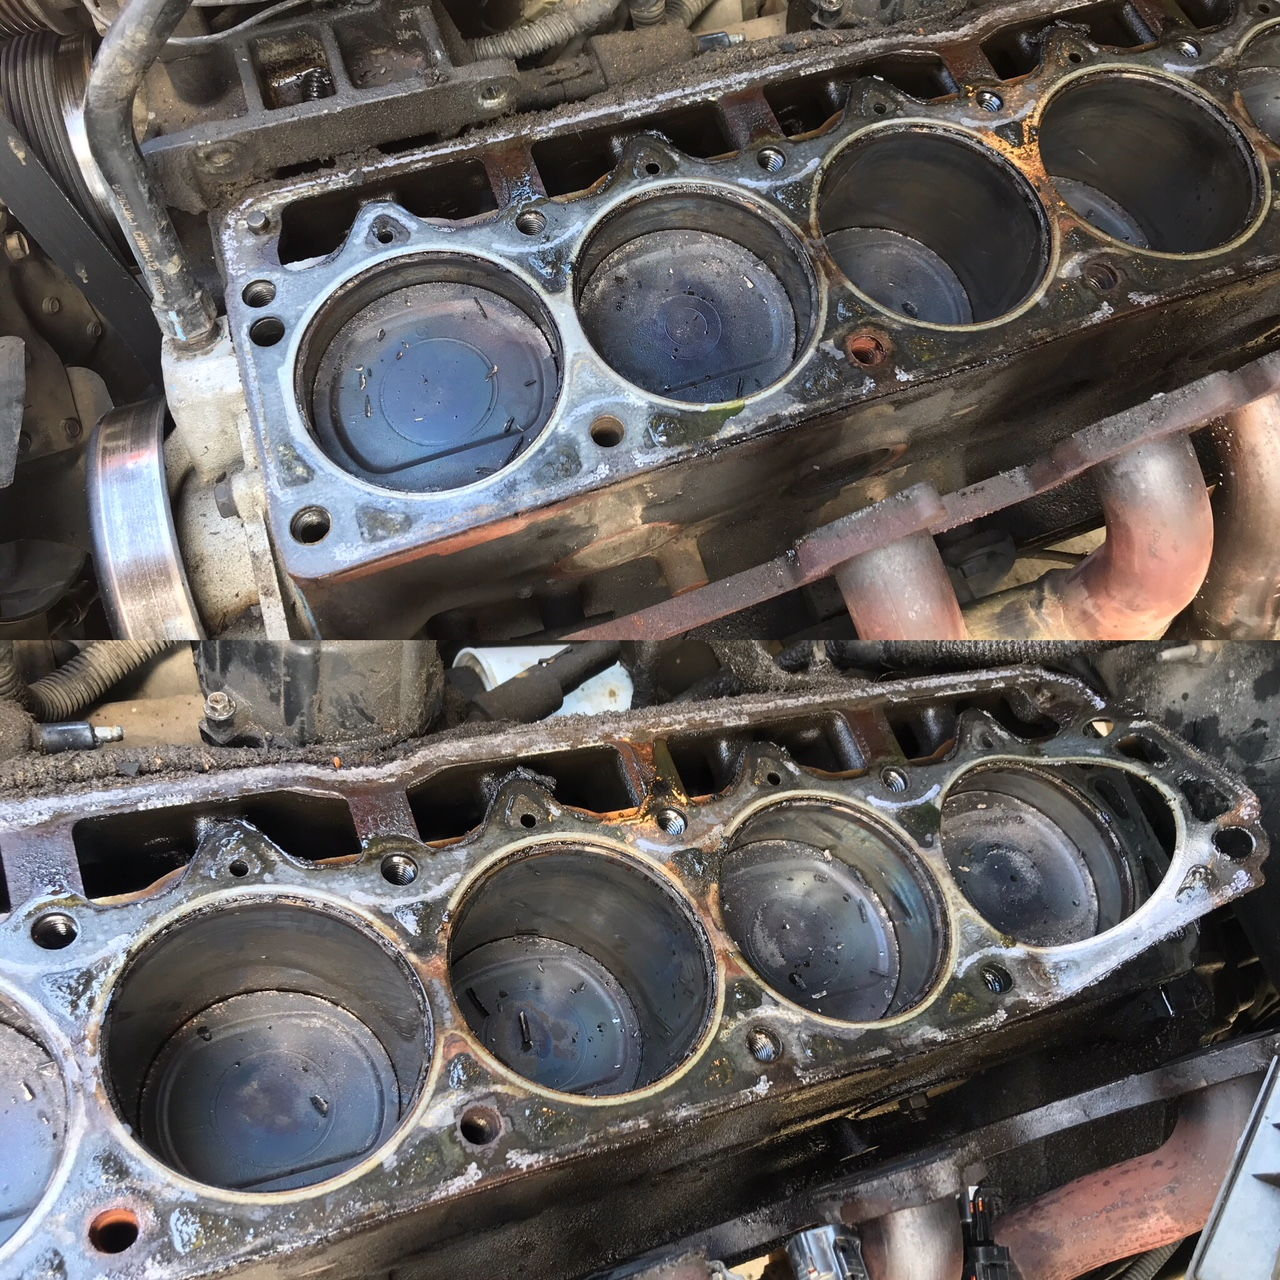 Signs Of A Blown Head Gasket >> 4.0 head rebuild in progress. Lots of question and ...